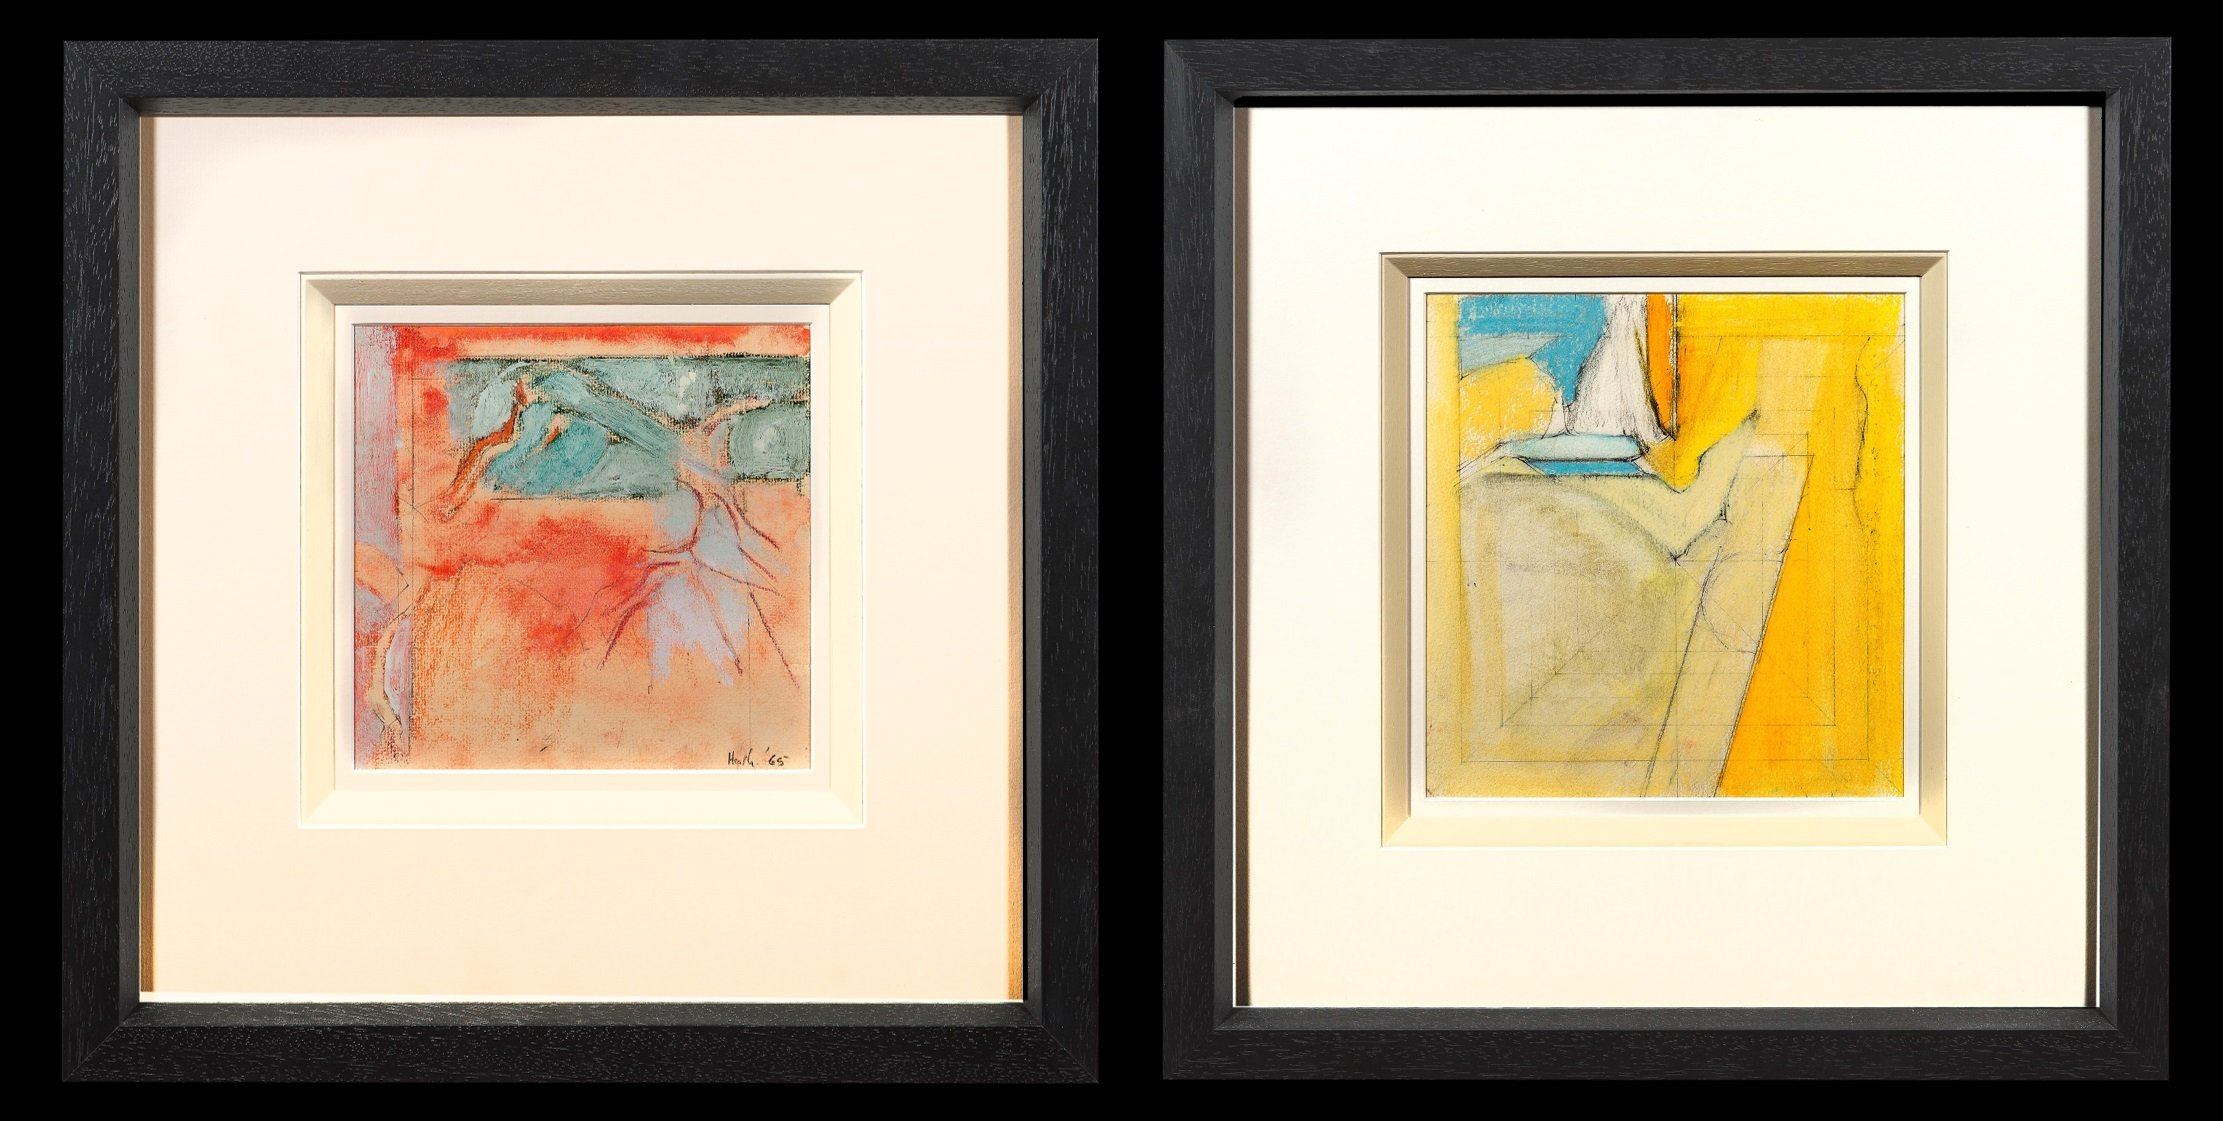 pair of abstract paintings, the left with colours in block pencil lines including yellow, blue and beige and the right work is red watercolour with a teal colour running through it